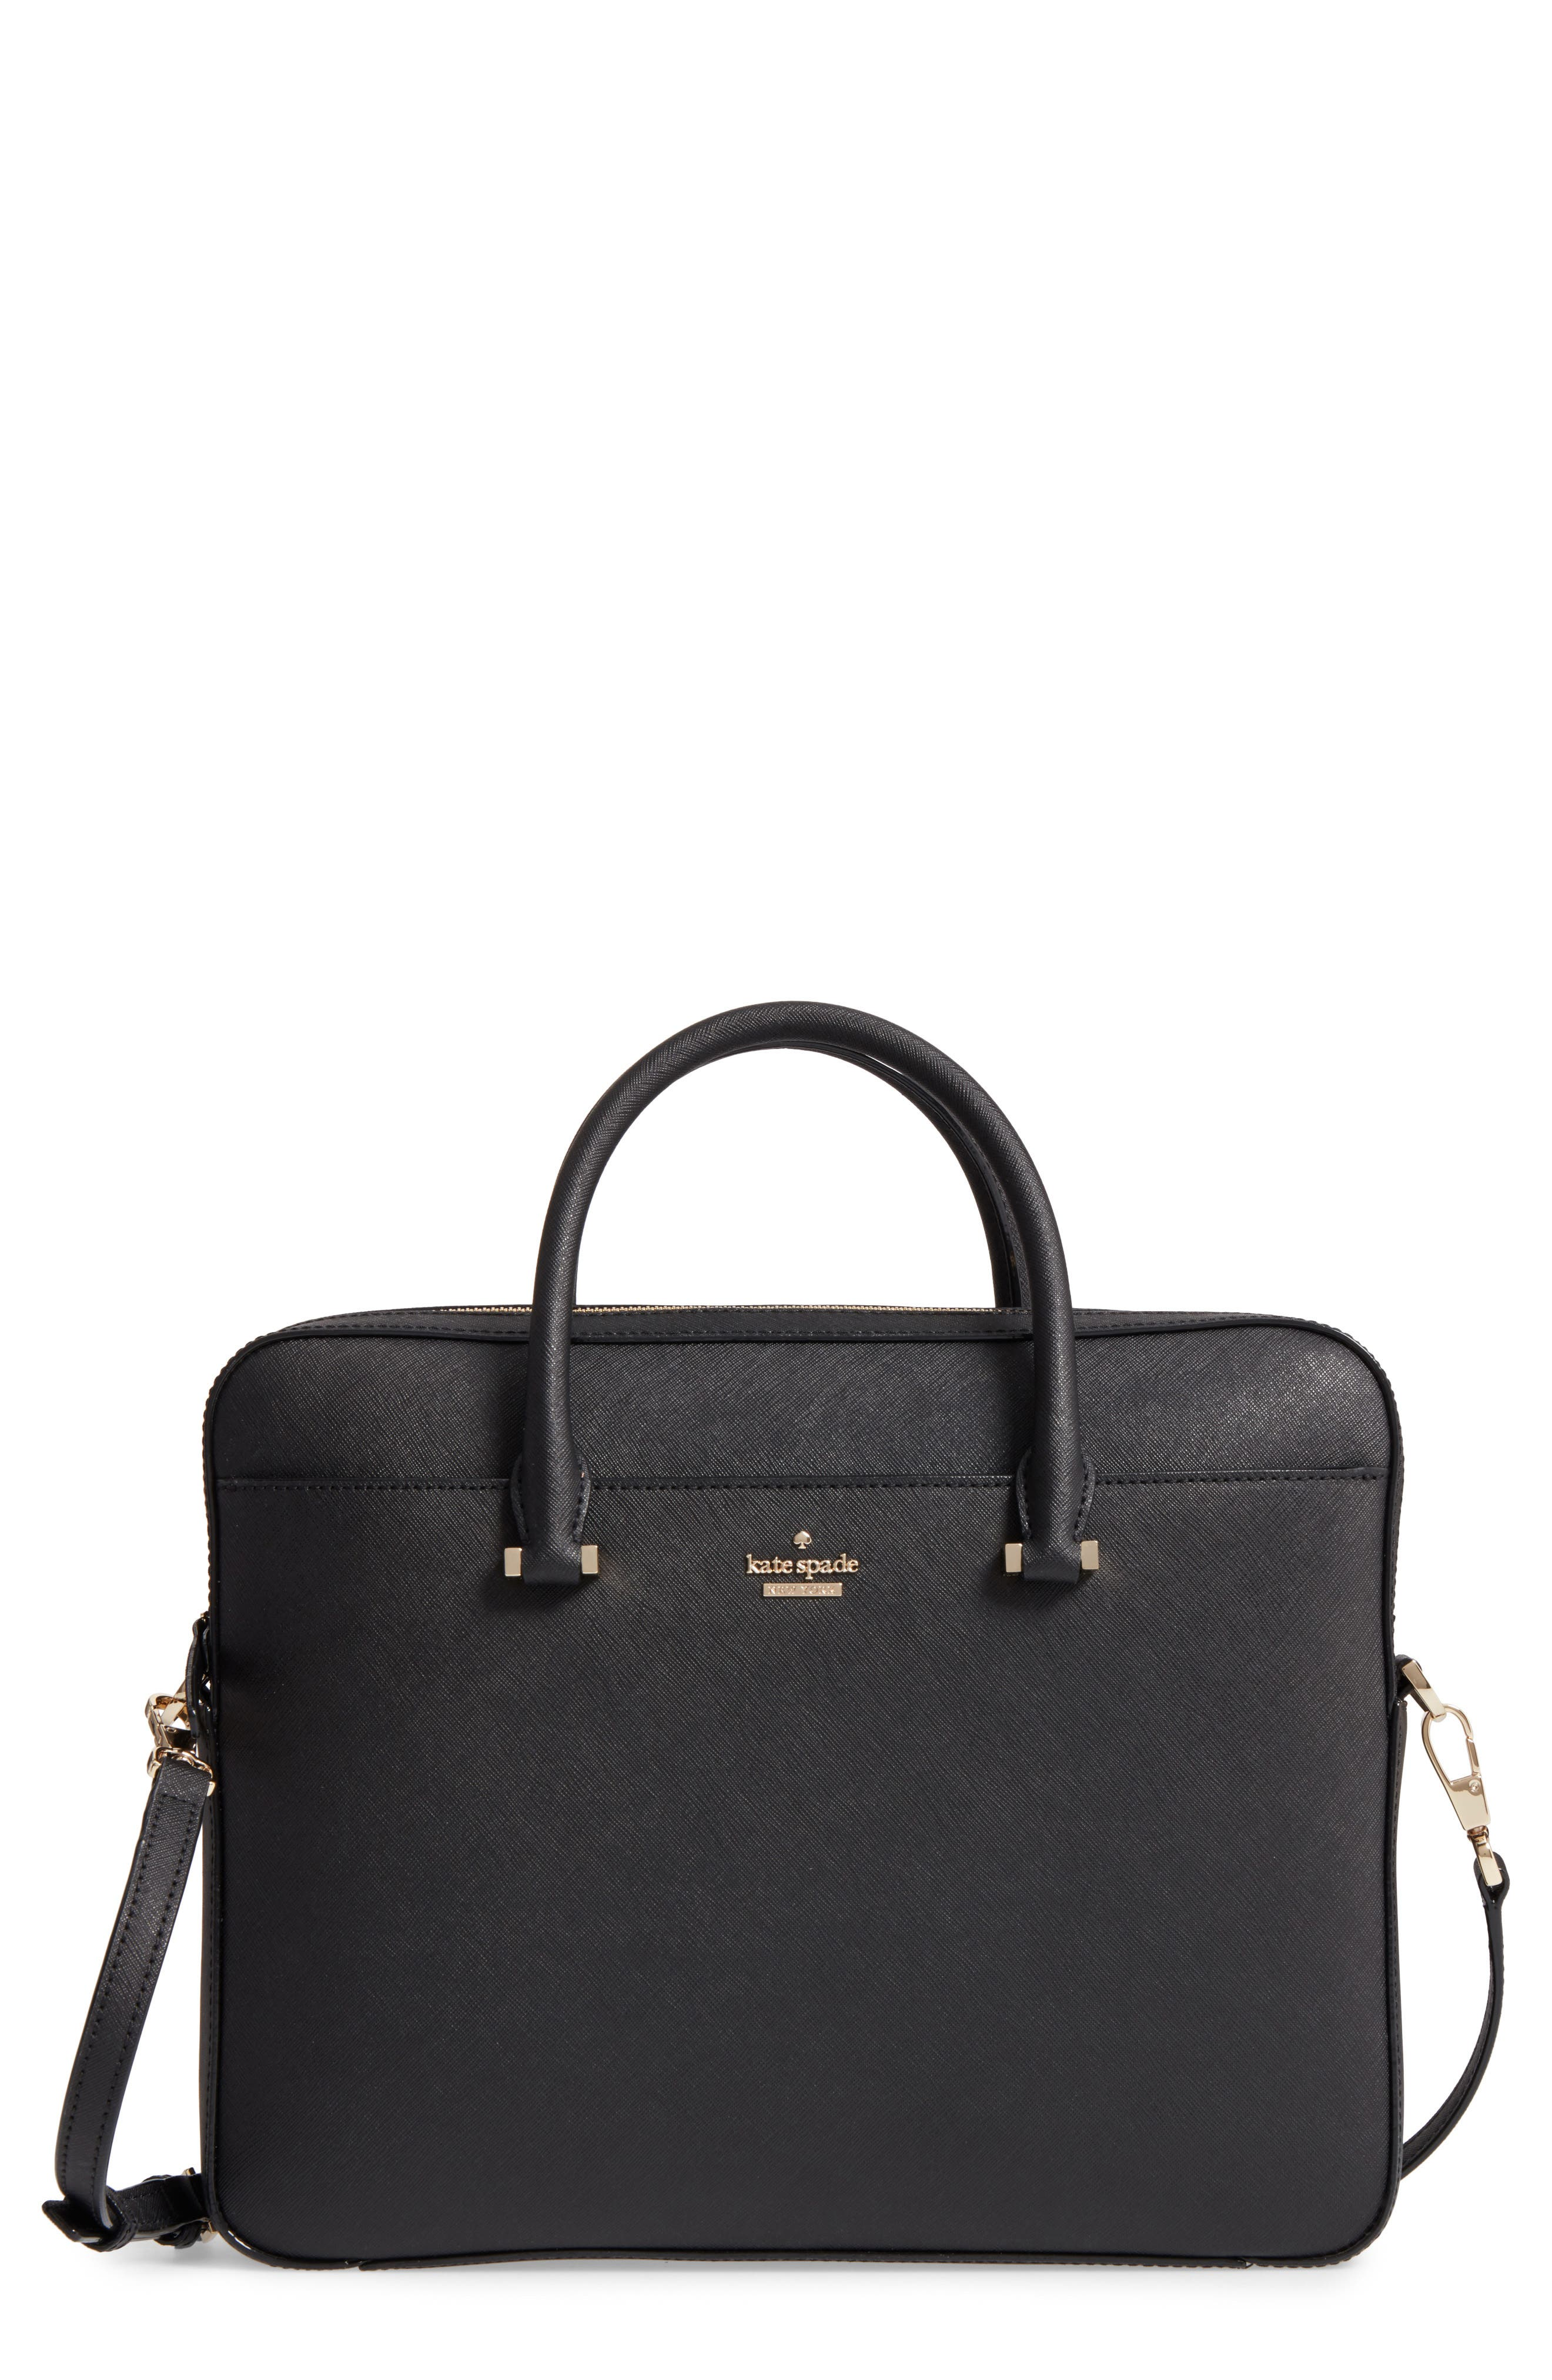 kate spade new york saffiano leather laptop bag